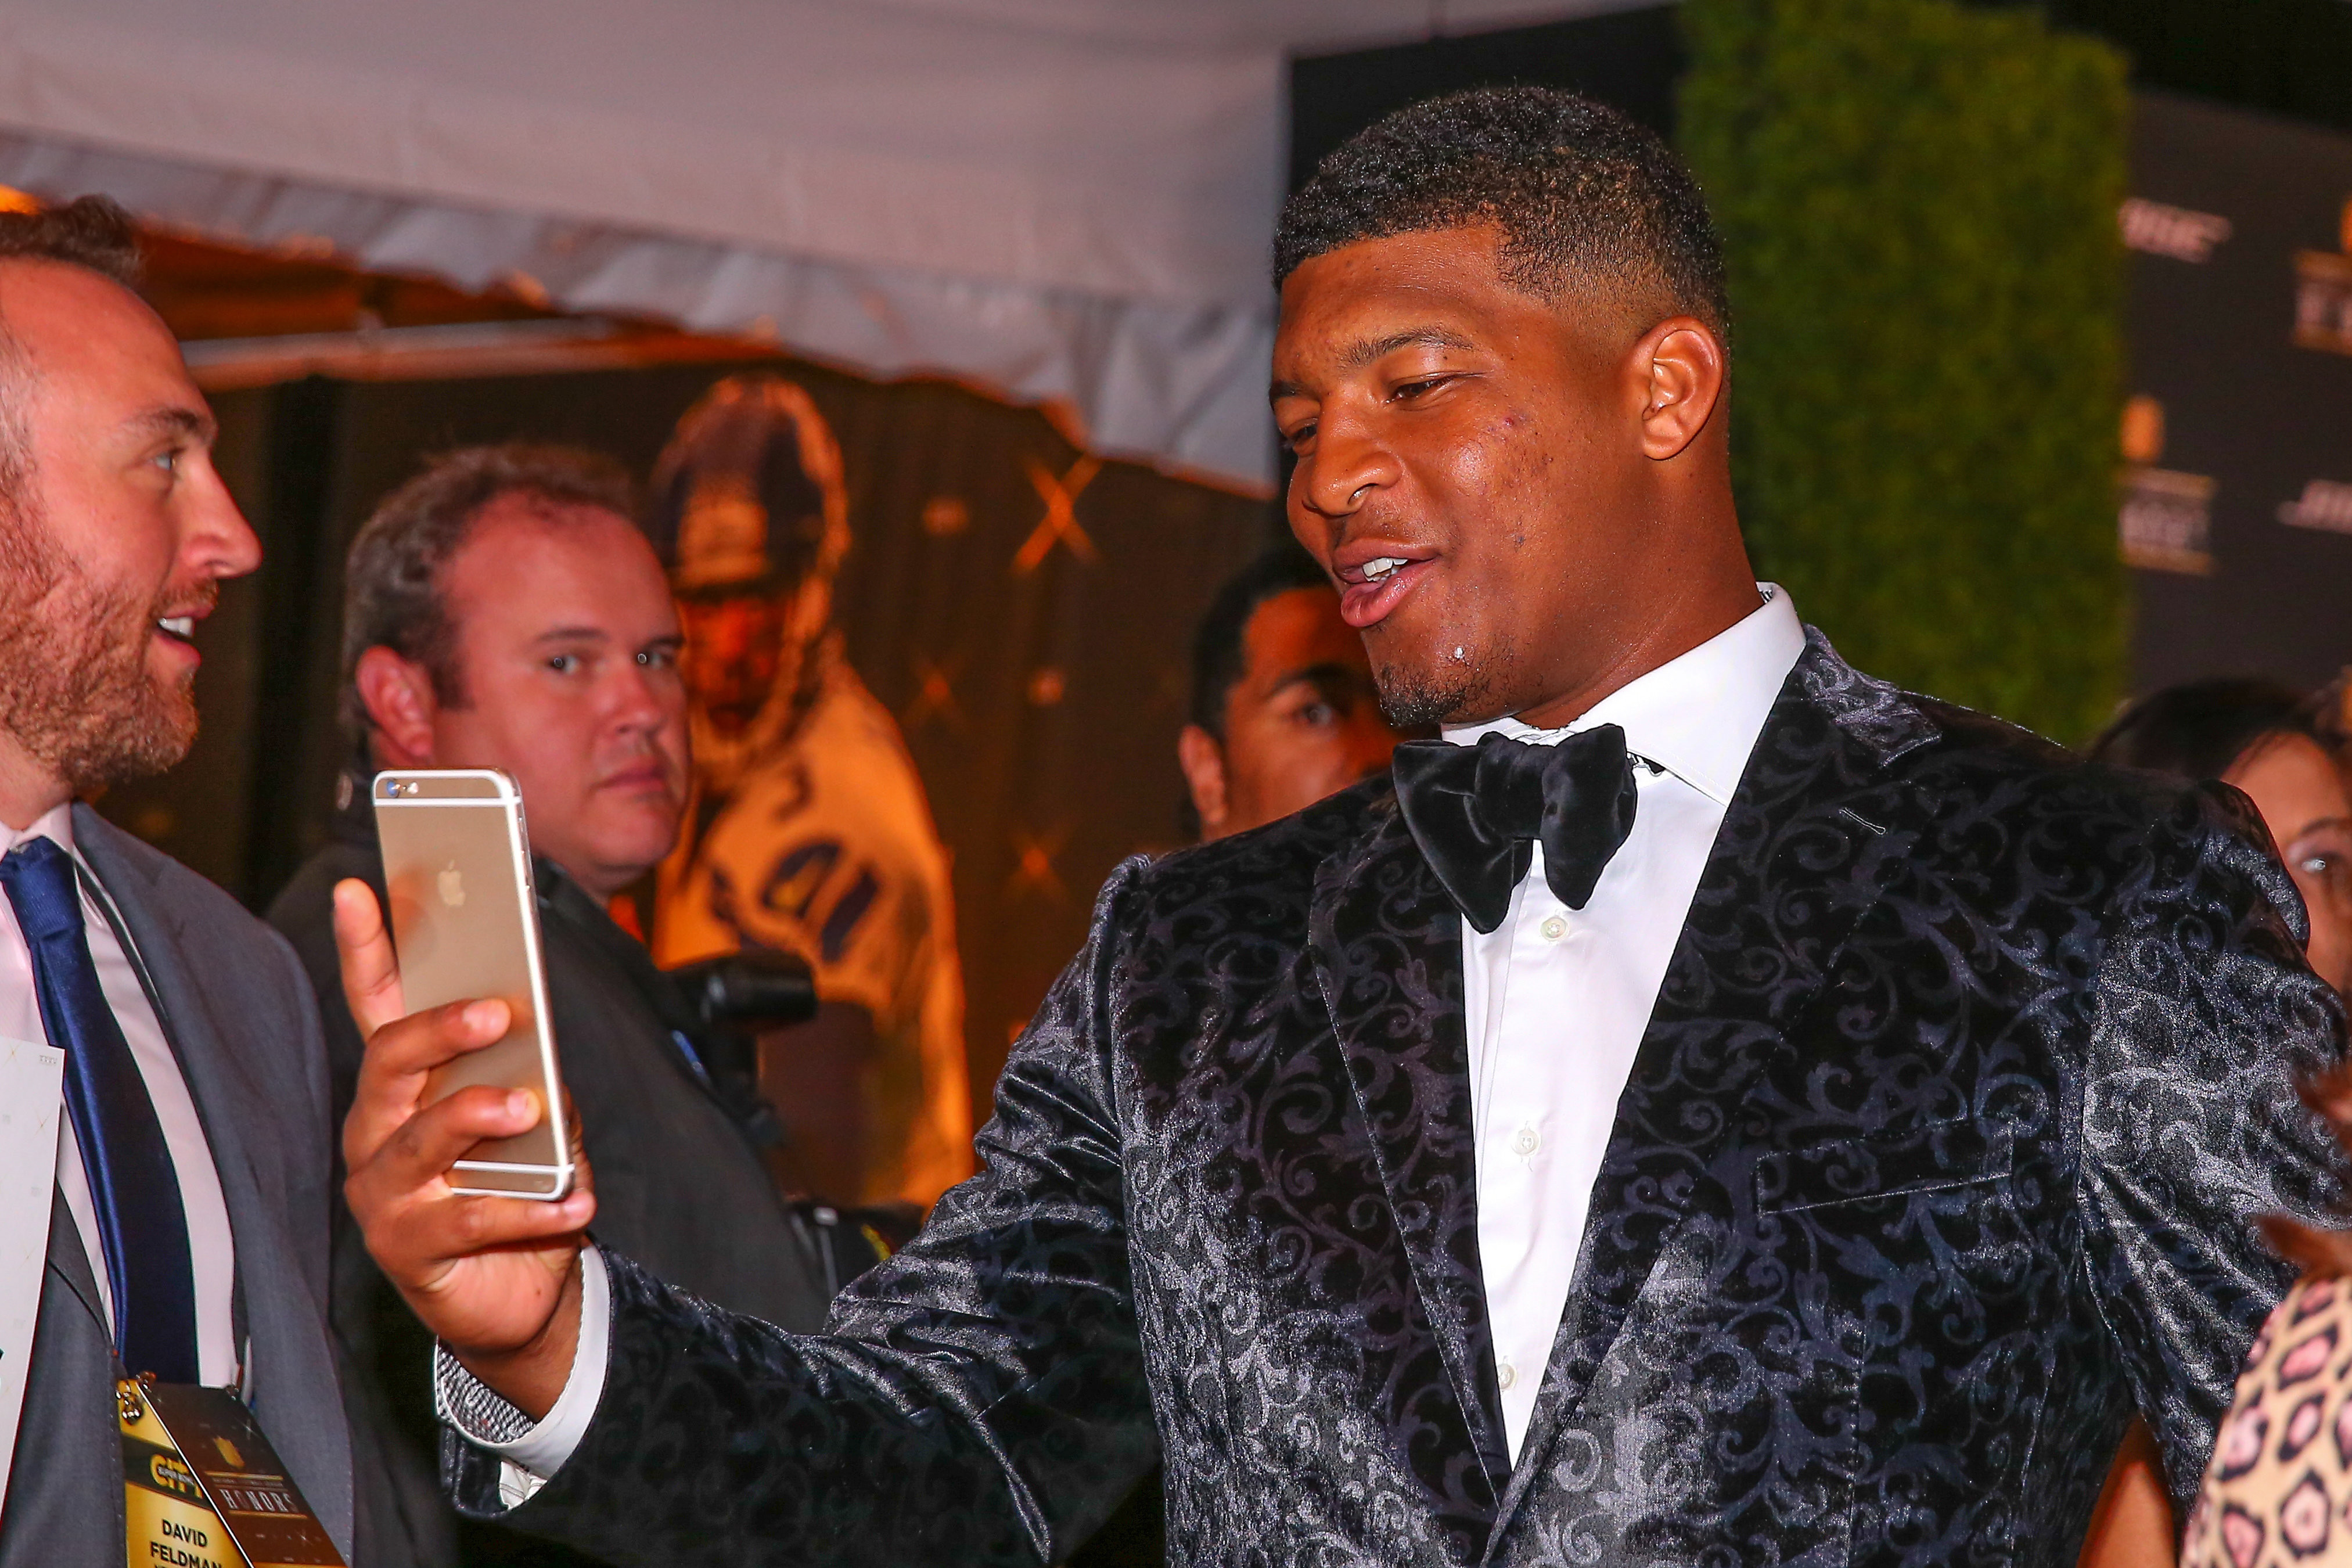 Tampa Bay Buccaneers quarterback Jameis Winston on the Red Carpet for the 5th Annual NFL Honors at the Bill Graham Civic Auditorium in San Francisco California.